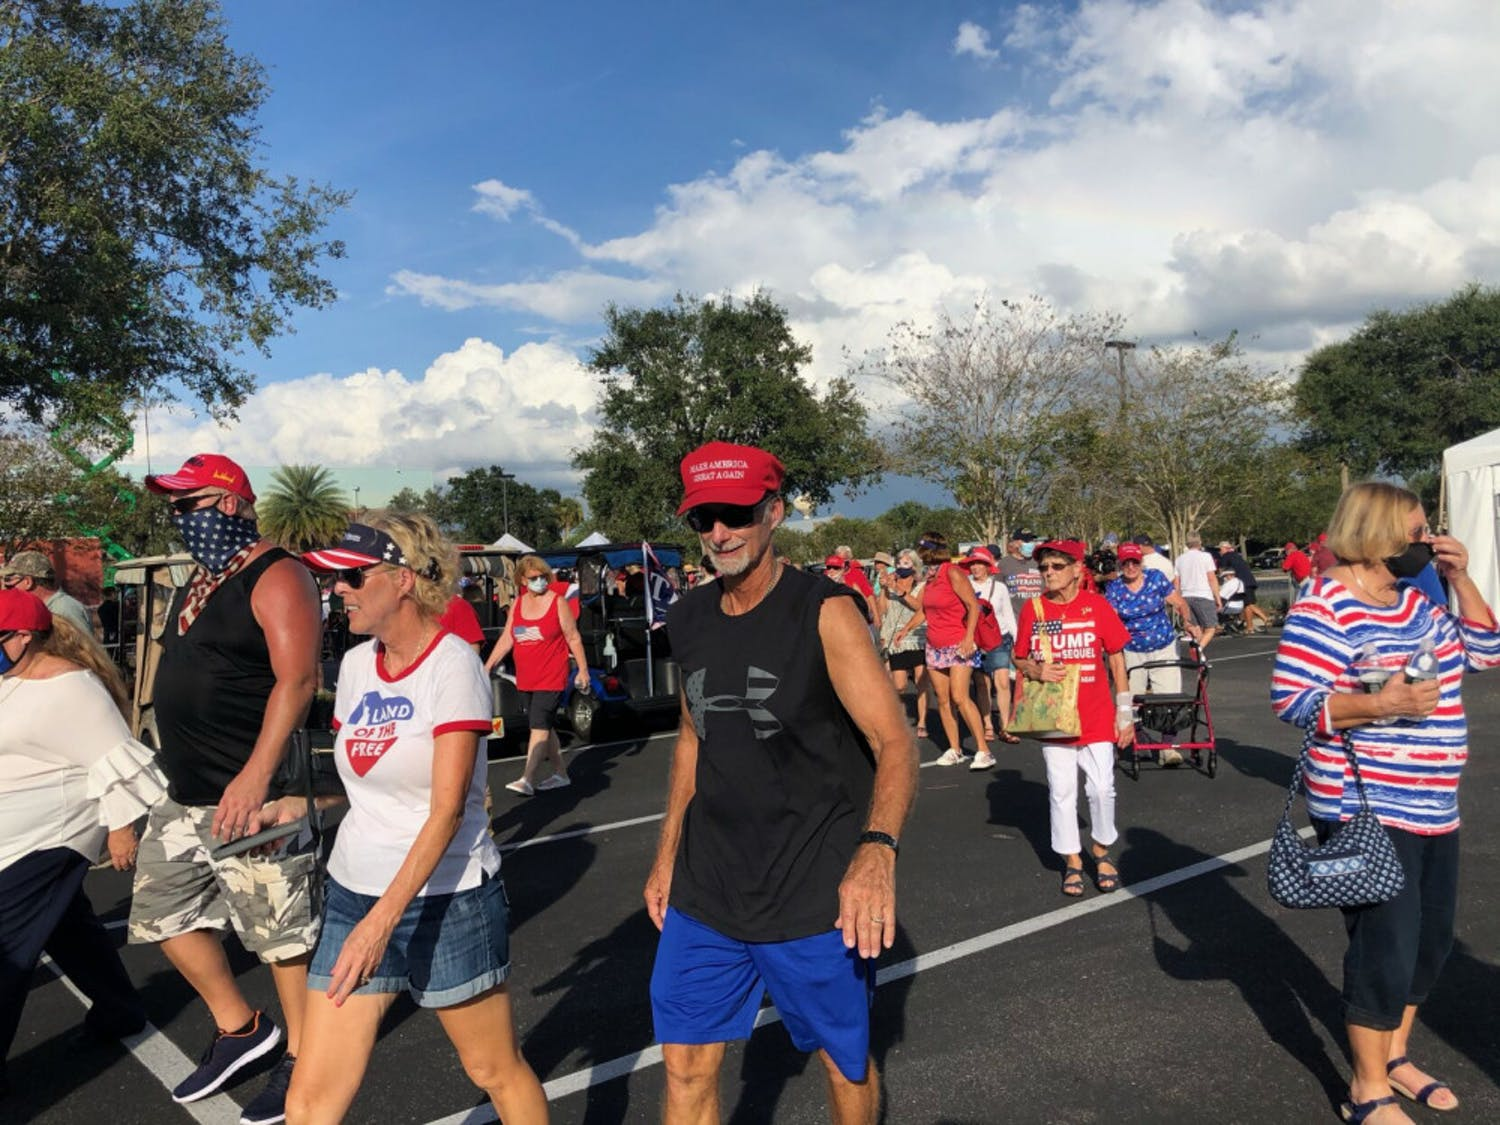 Hundreds of people gathered at The Villages,a massive retirement community west of Orlando, on Saturday to hear Vice President Mike Pence's campaign speech.